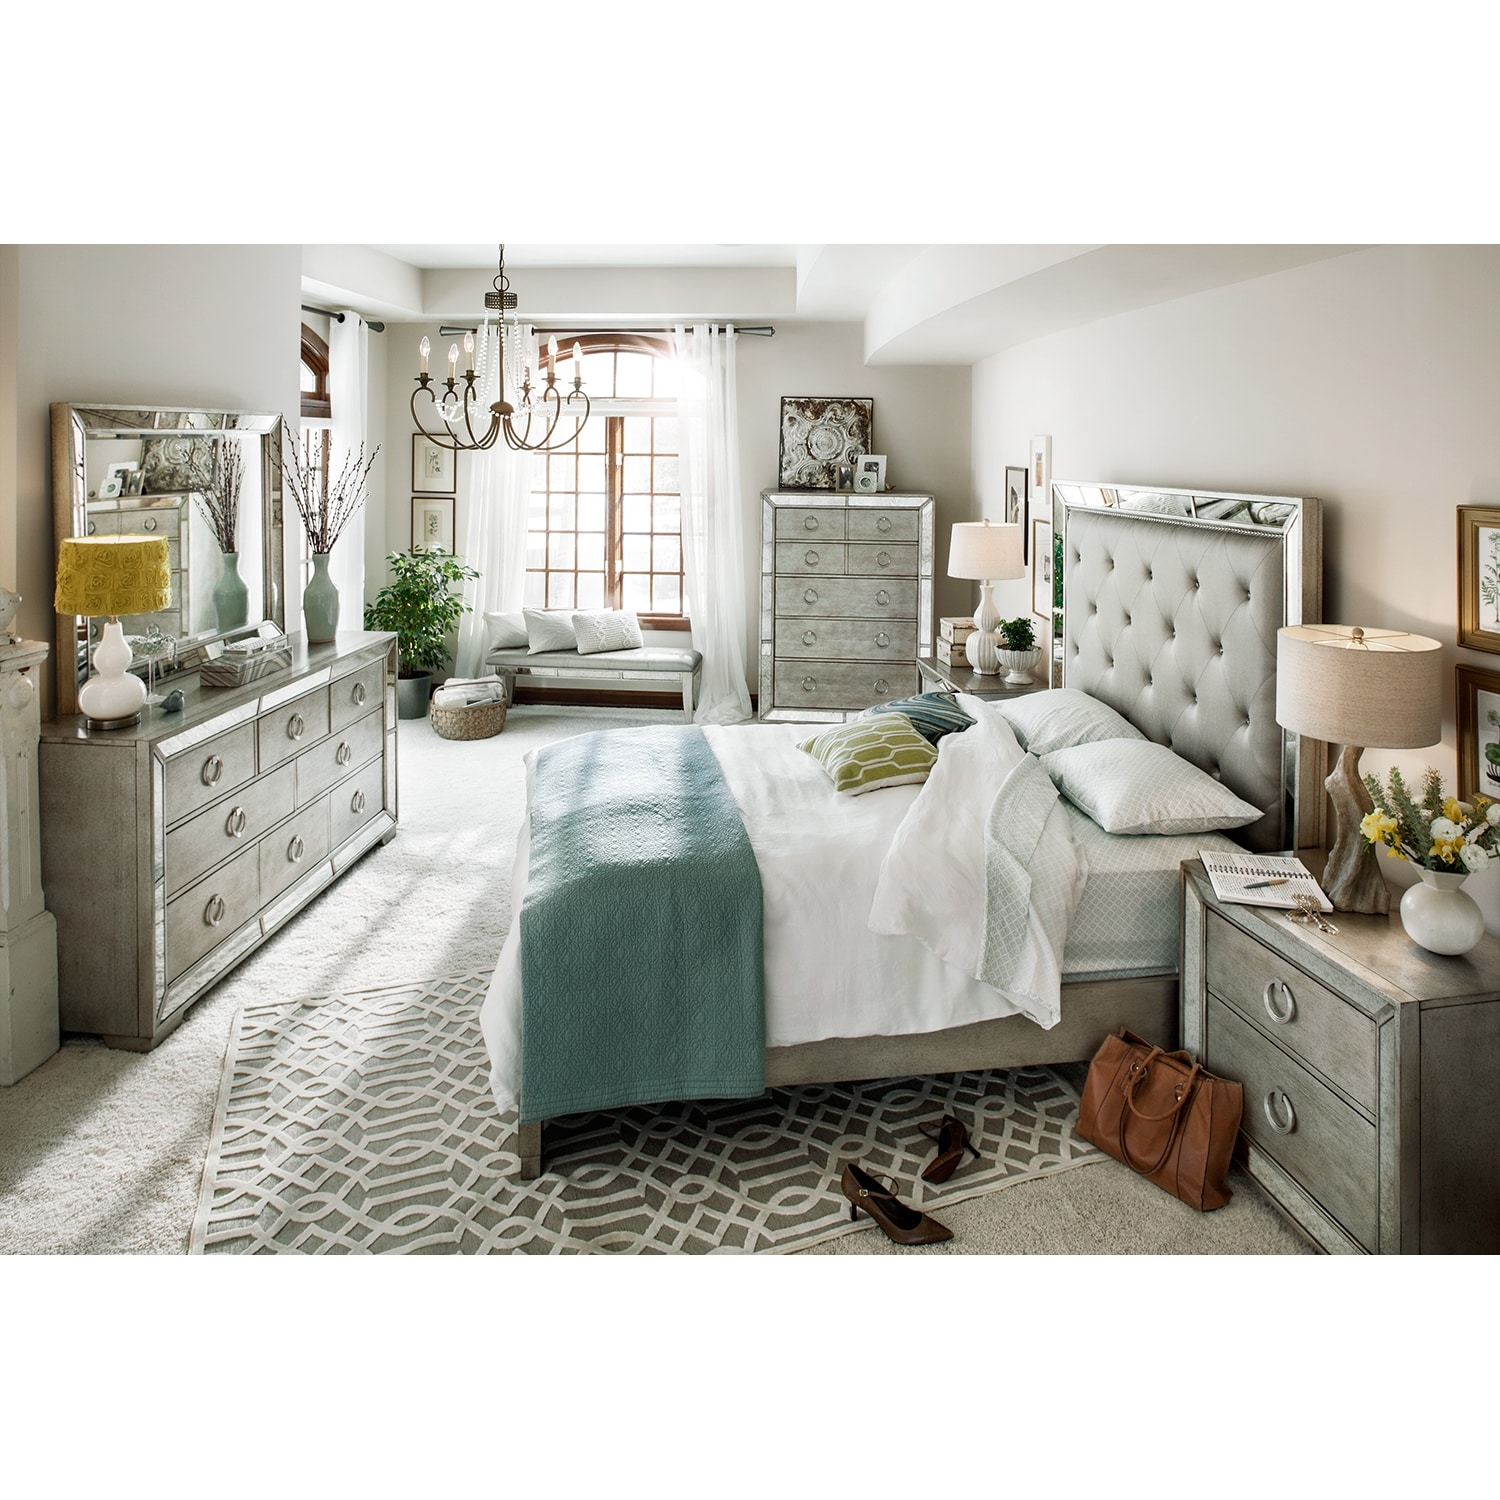 Angelina 5-Piece Queen Bedroom Set - Metallic